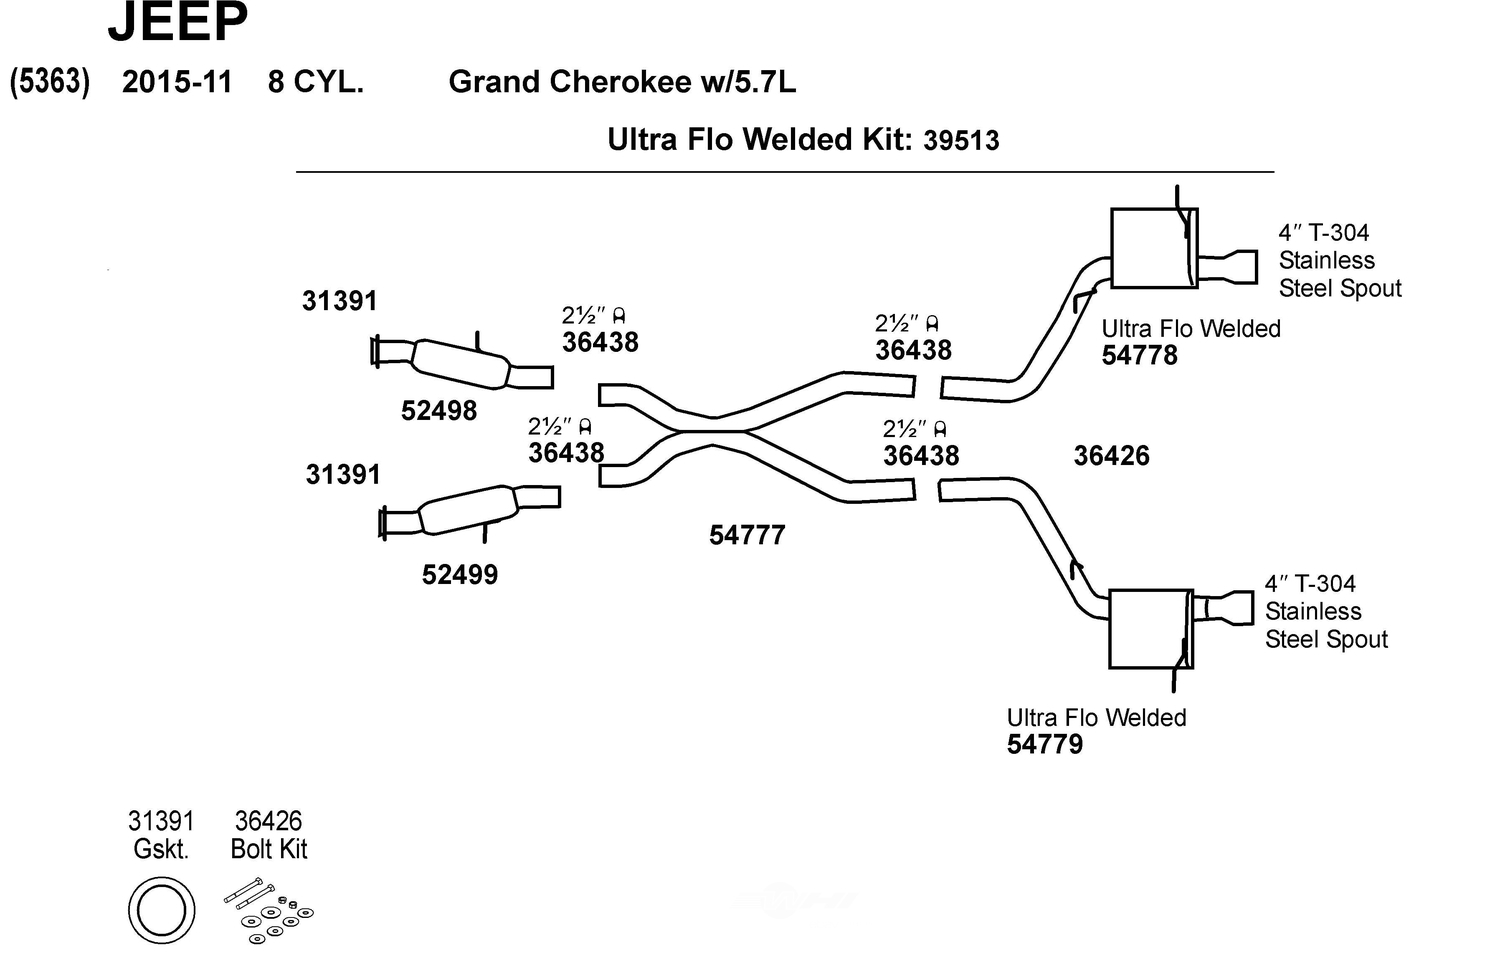 cj5 exhaust system diagram click to zoom 1990 ford f150 exhaust system diagram #5